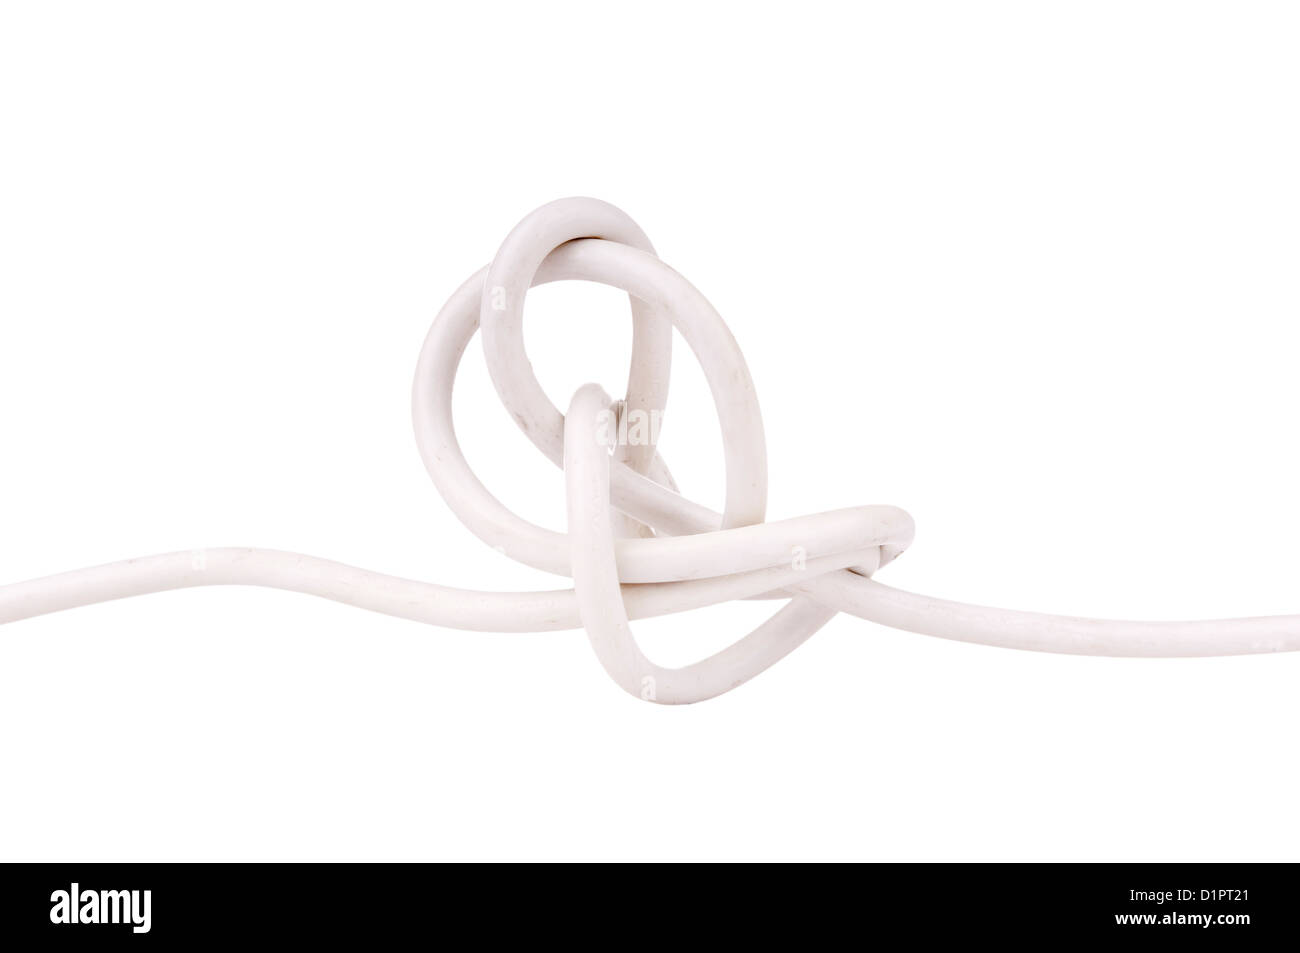 Electrical wire tangled in a knot isolated on white - Stock Image